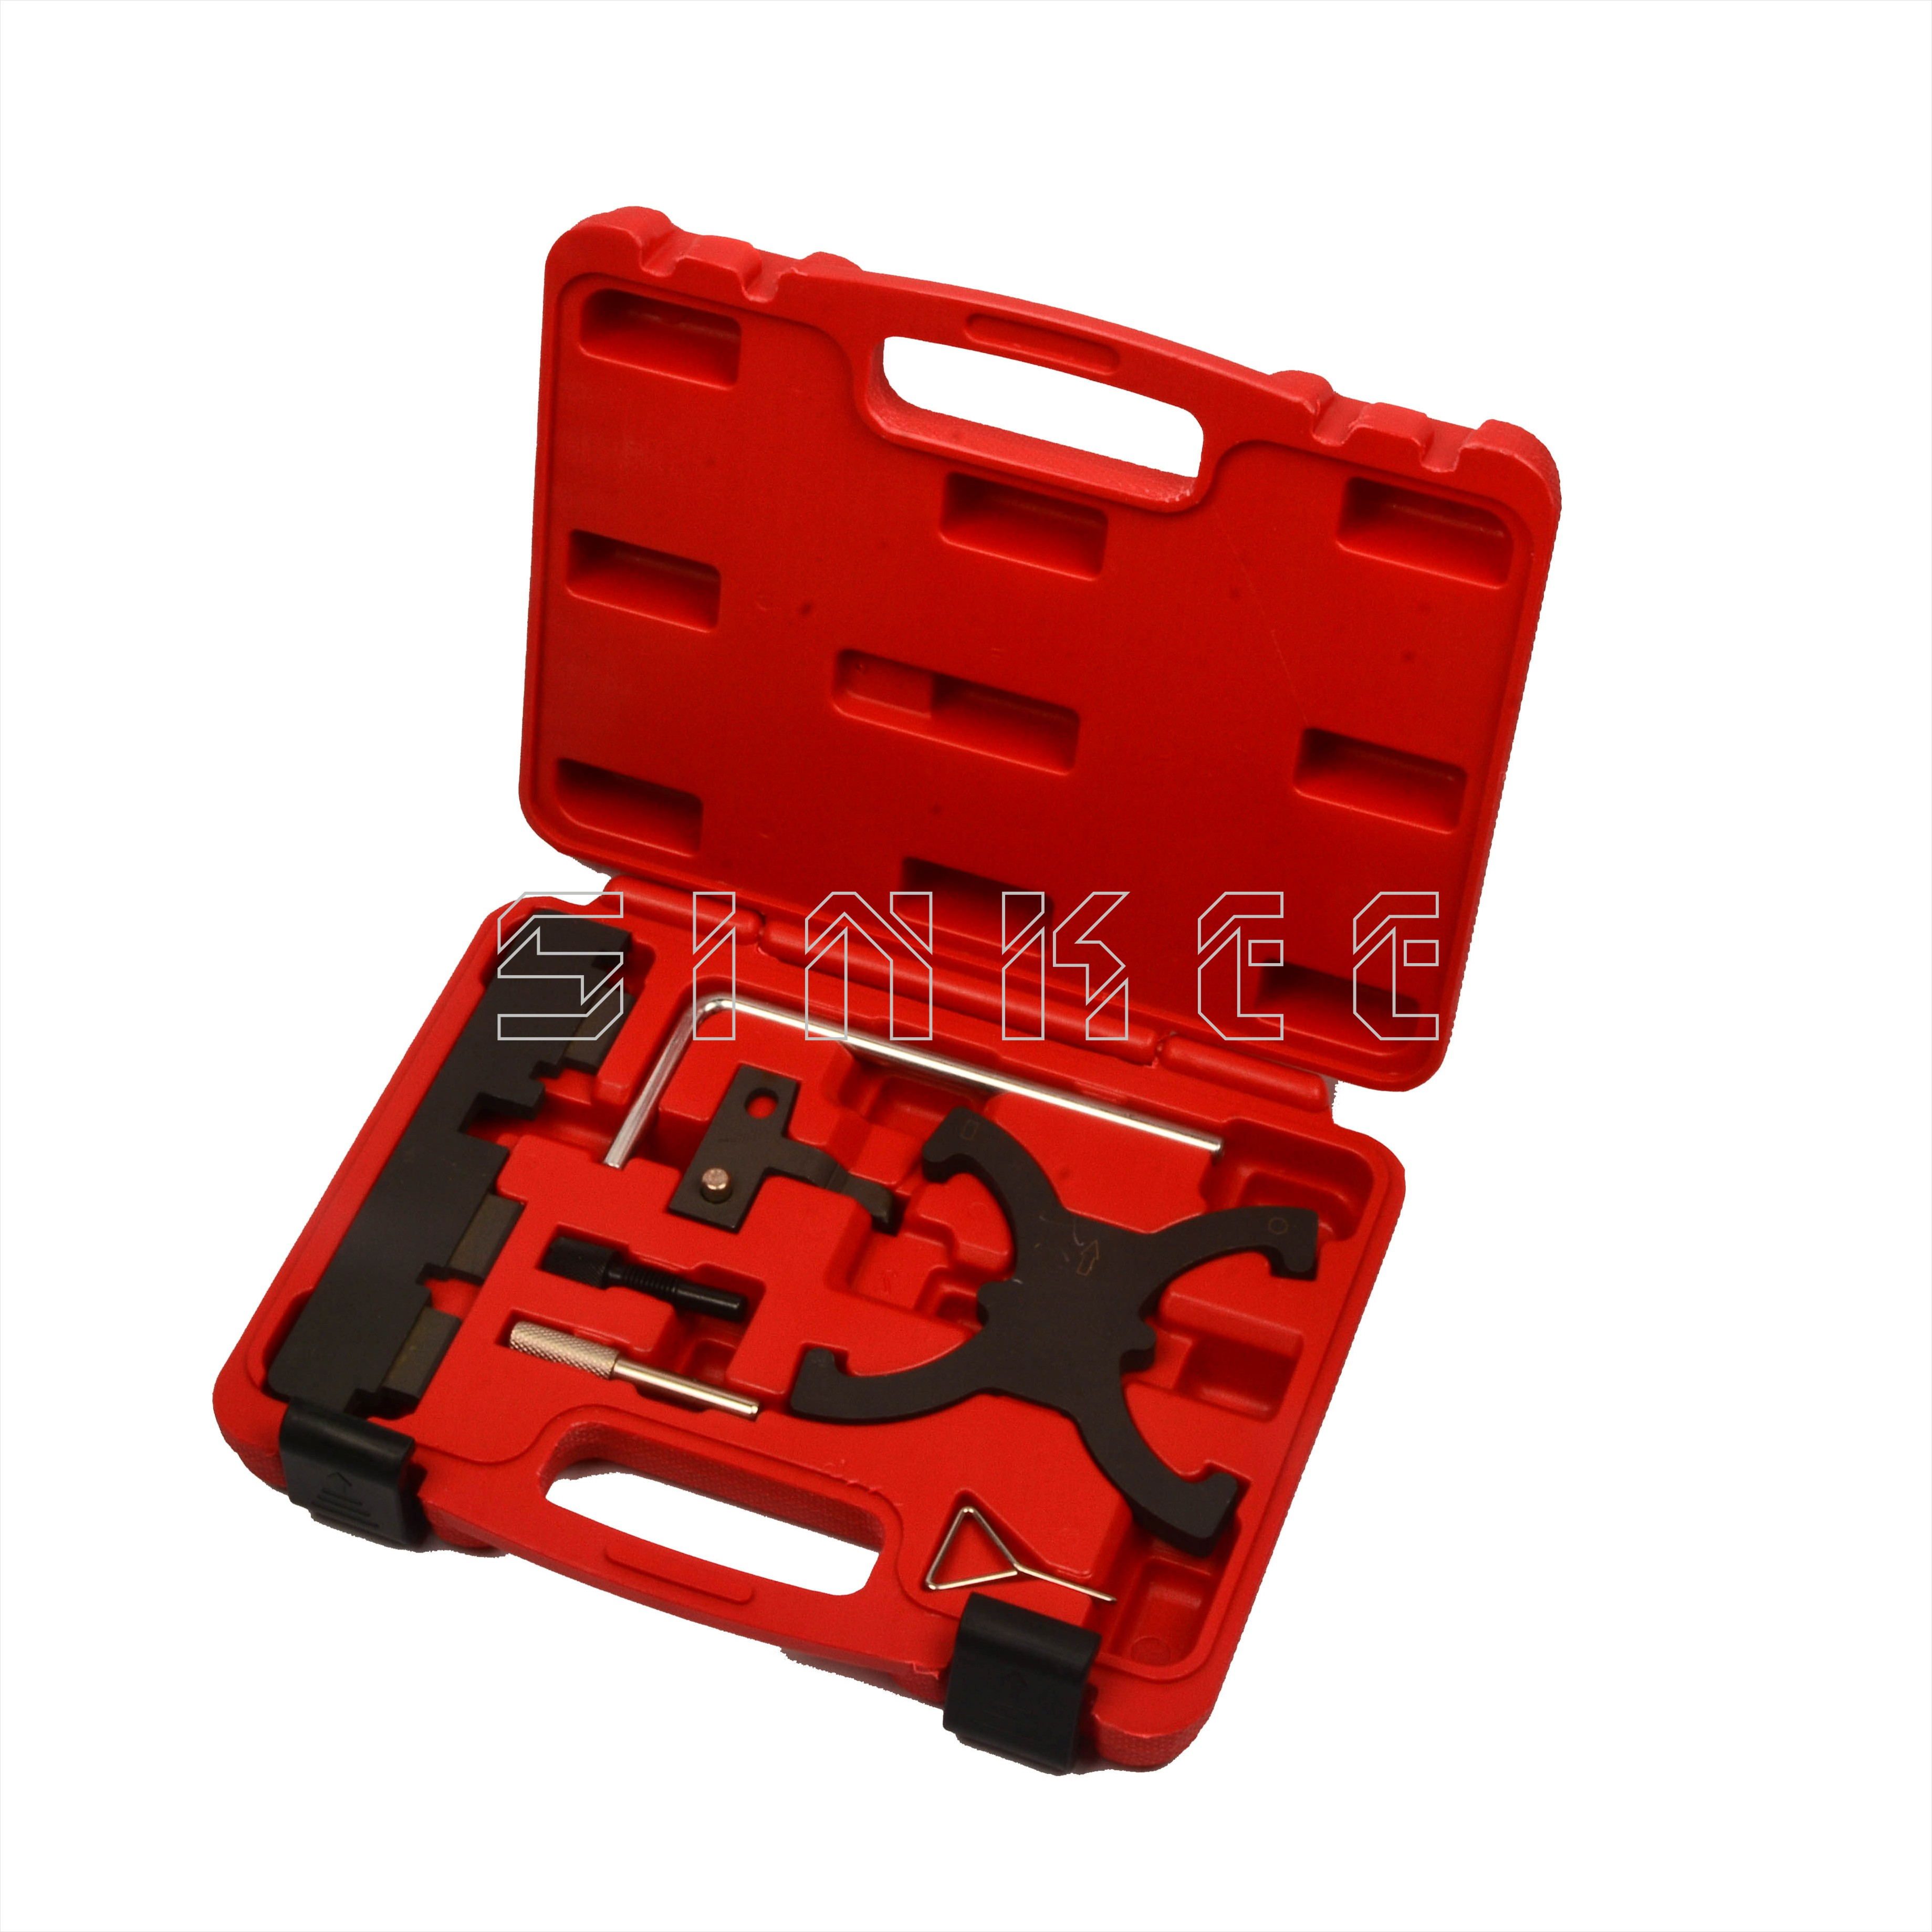 Engine Timing Tool Kit For Ford 1.6 TI-VCT 1.6 Duratec EcoBoost C-MAX, Fiesta, Focus jiangdong engine parts for tractor the set of fuel pump repair kit for engine jd495